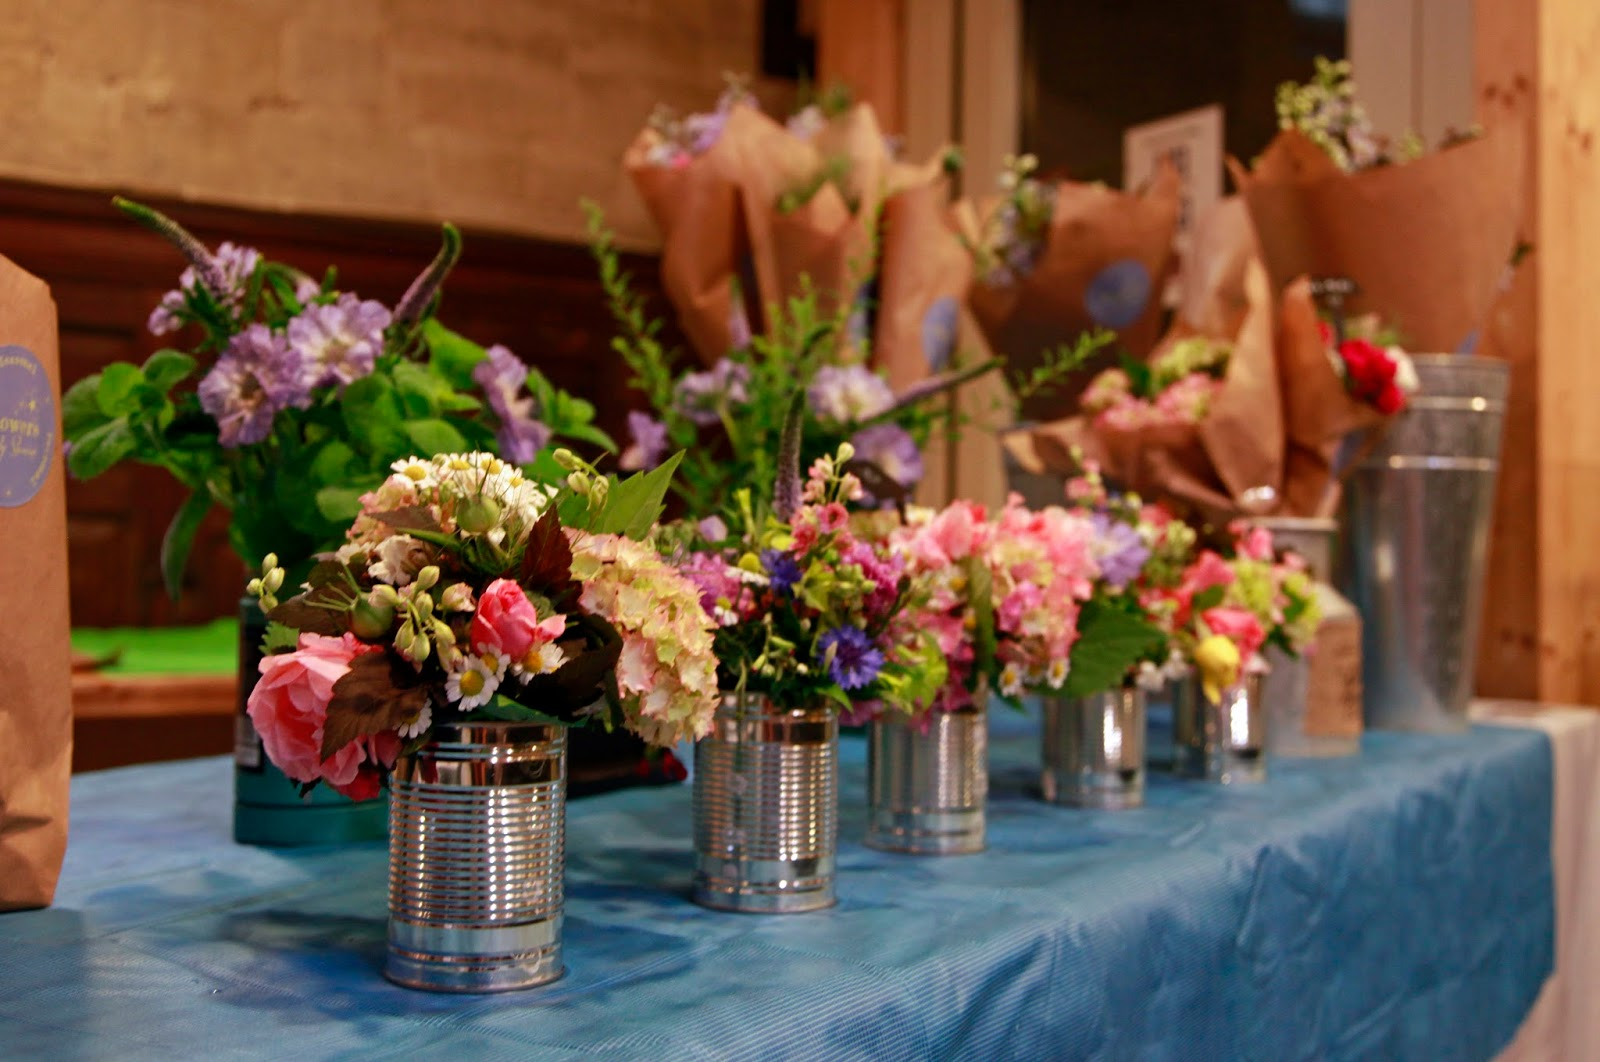 Flowers by Shamini: British flowers at the Summer Tumblr Eco-Design Fair